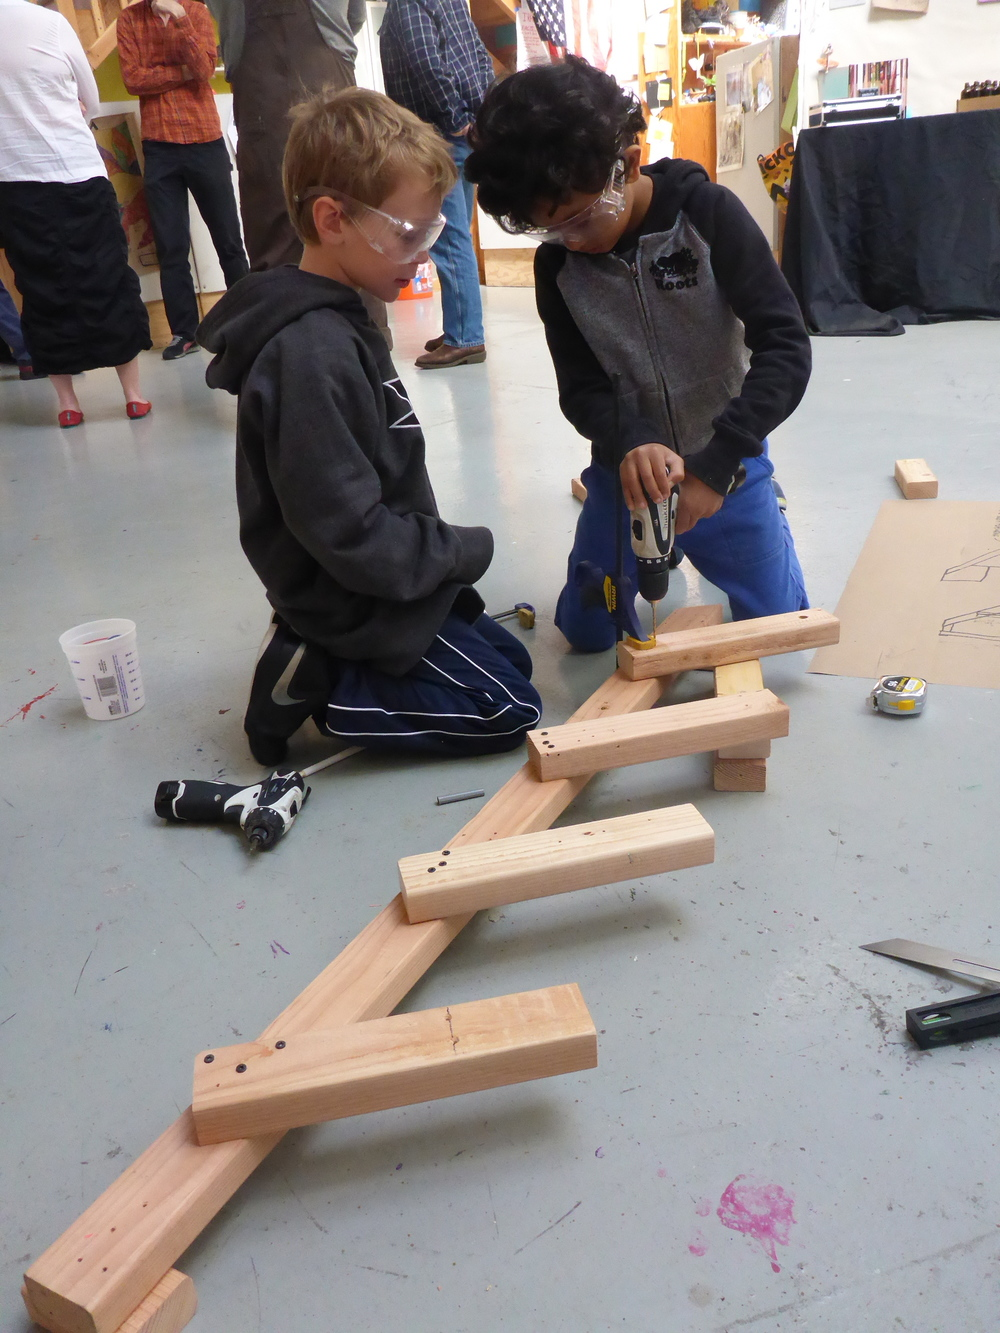 Gautam and Zach clamp and attach pieces of the stairs they are making.